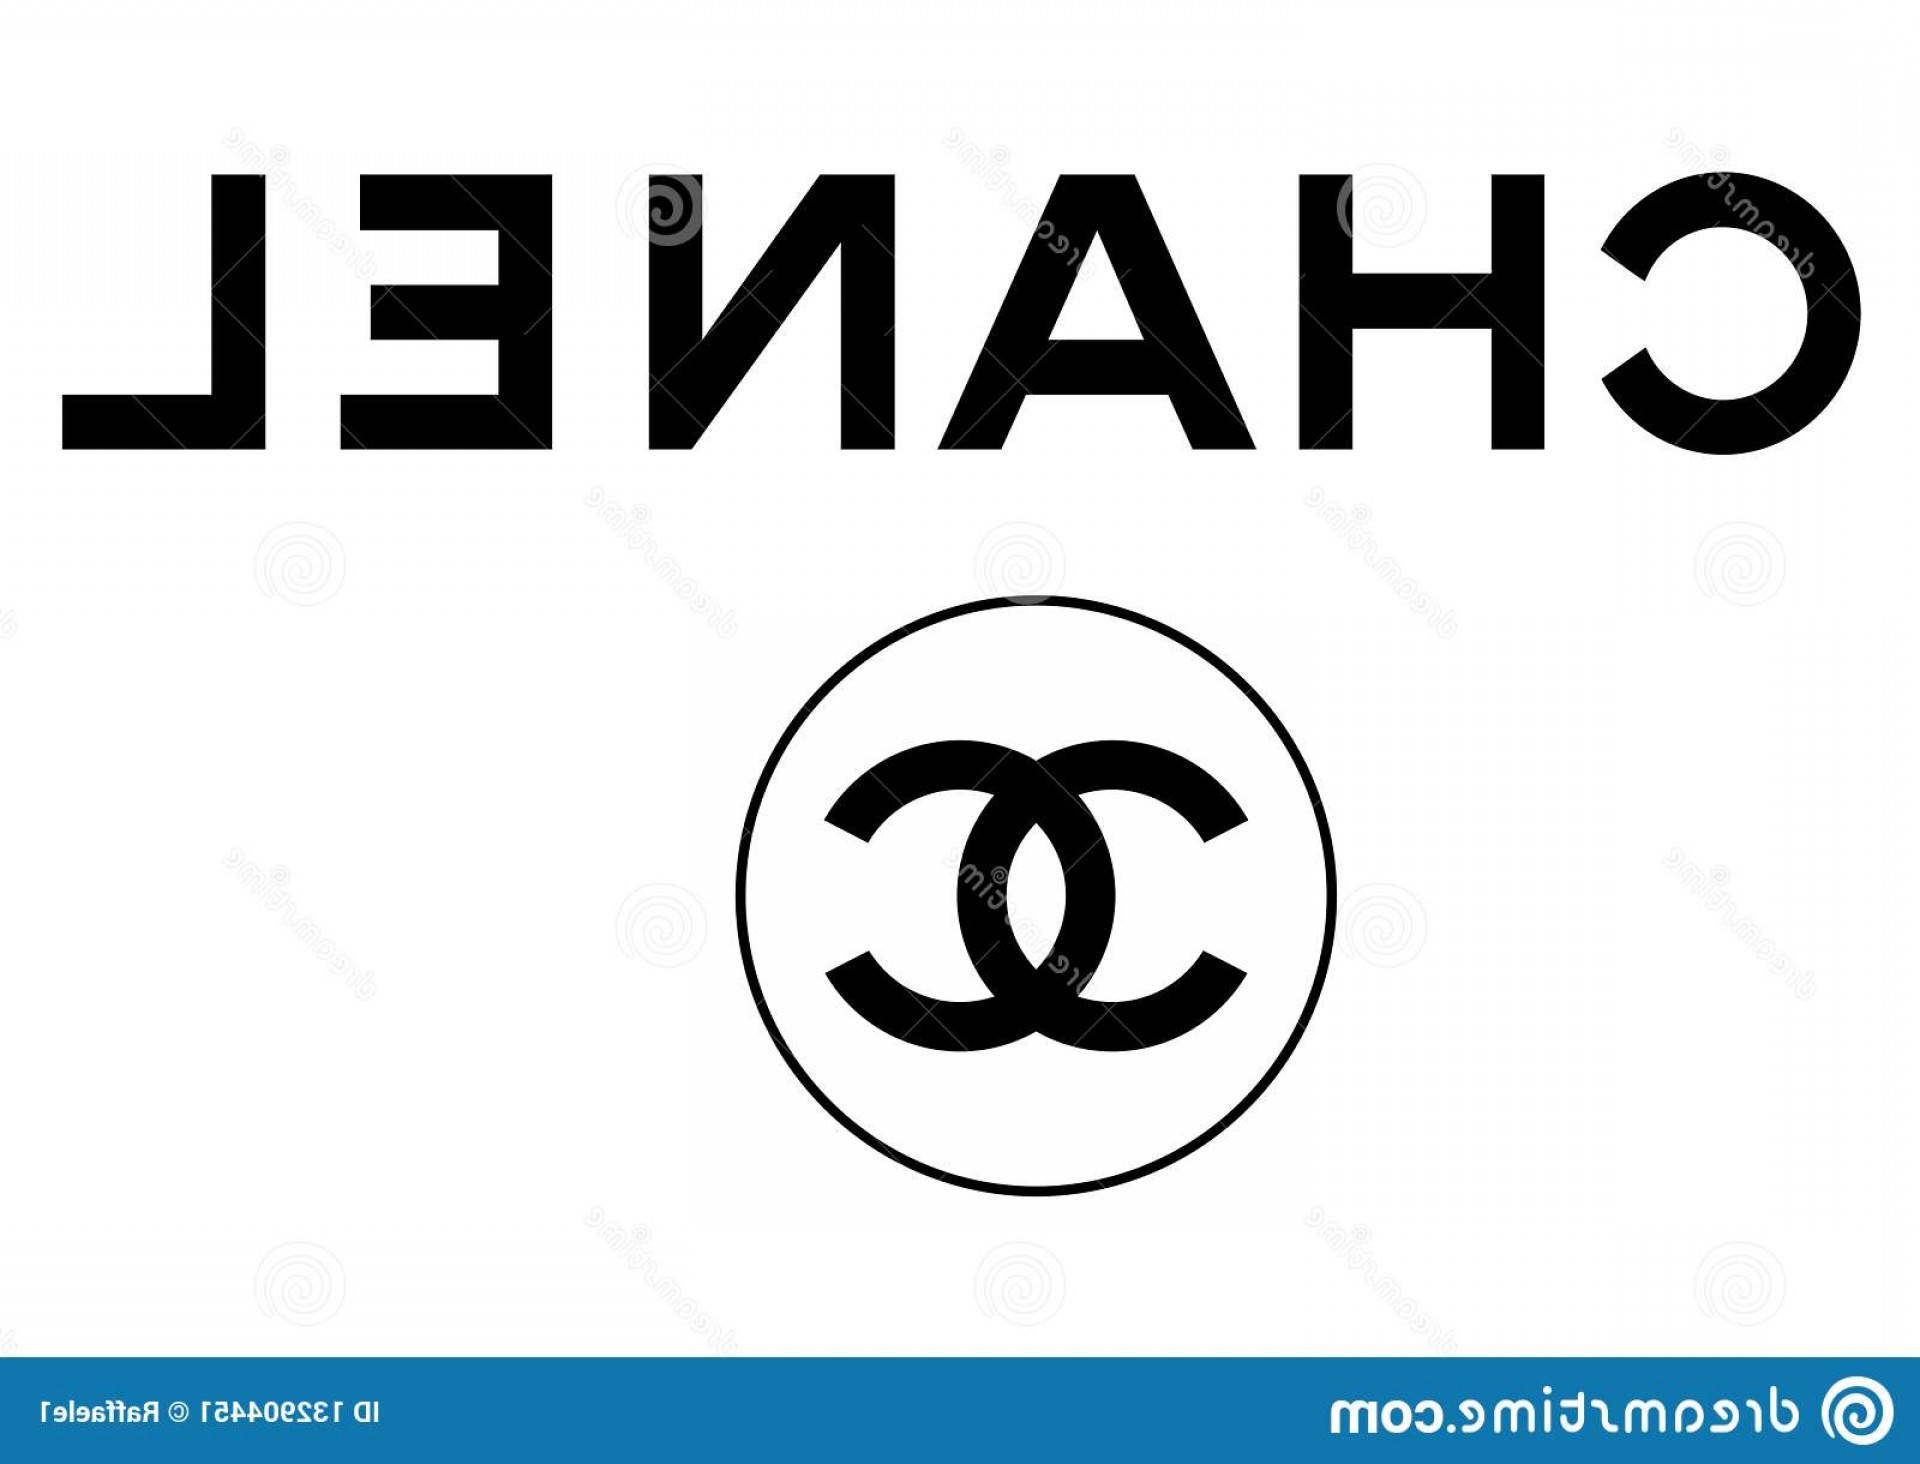 Chanel C Vector: Vector Logos Collection Most Famous Fashion Brands World Format Available Illustrator Ai Chanel Logo Image